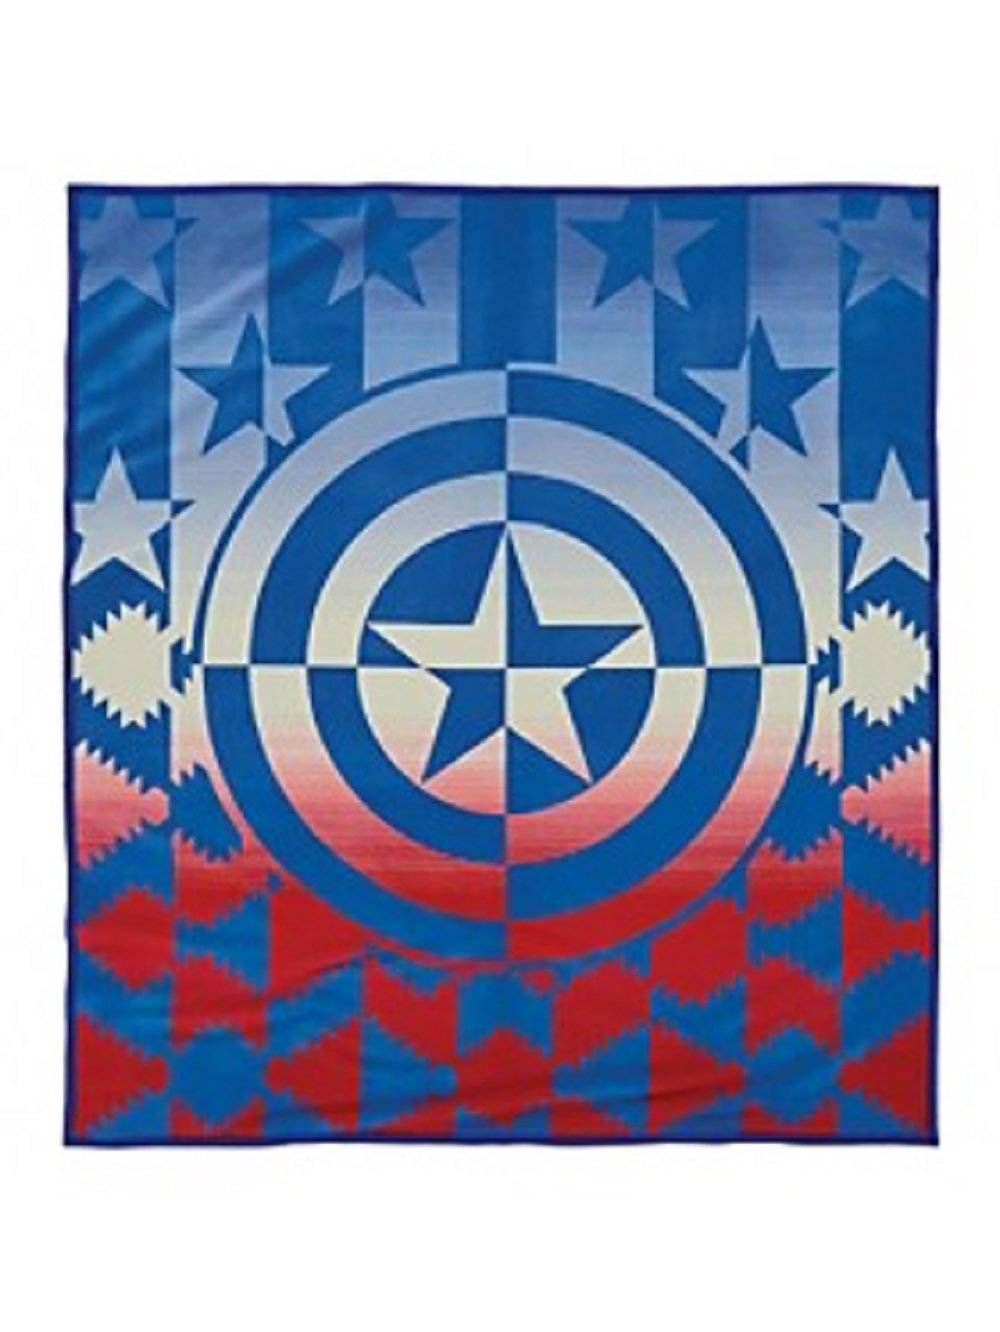 Pendleton Marvel's Captain America Blanket, Limited Edition by Pendleton